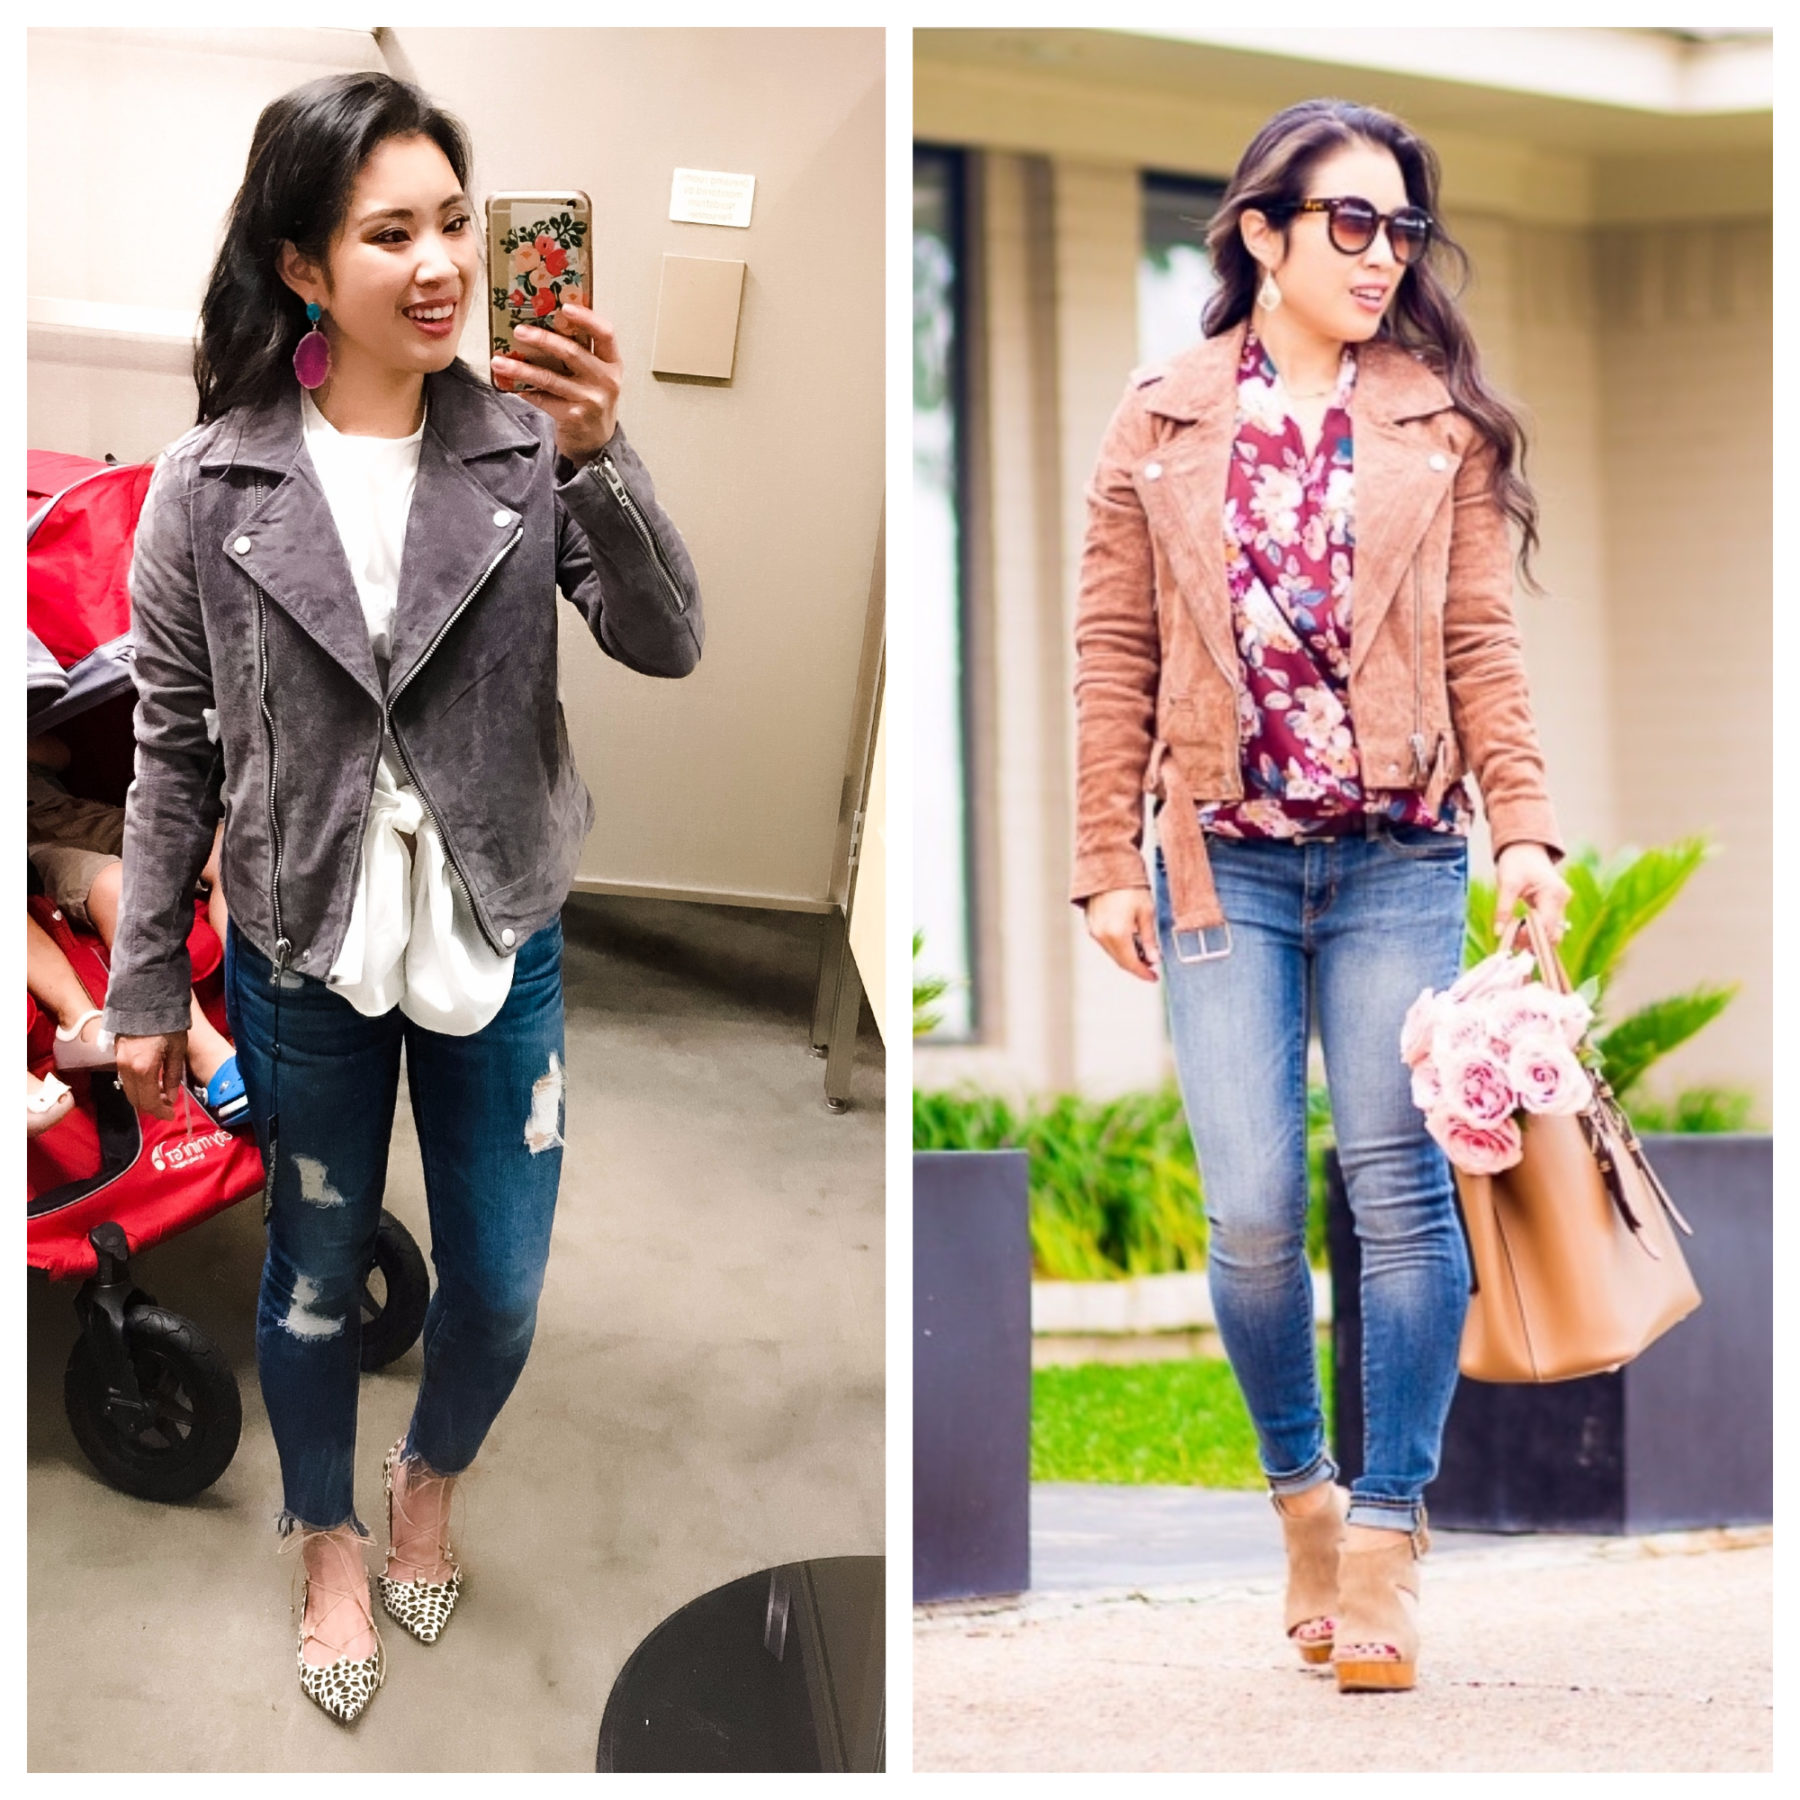 blanknyc moto jacket - Big Yearly Shopbop Sale: What I Own + Recommend by Dallas fashion blogger cute & little